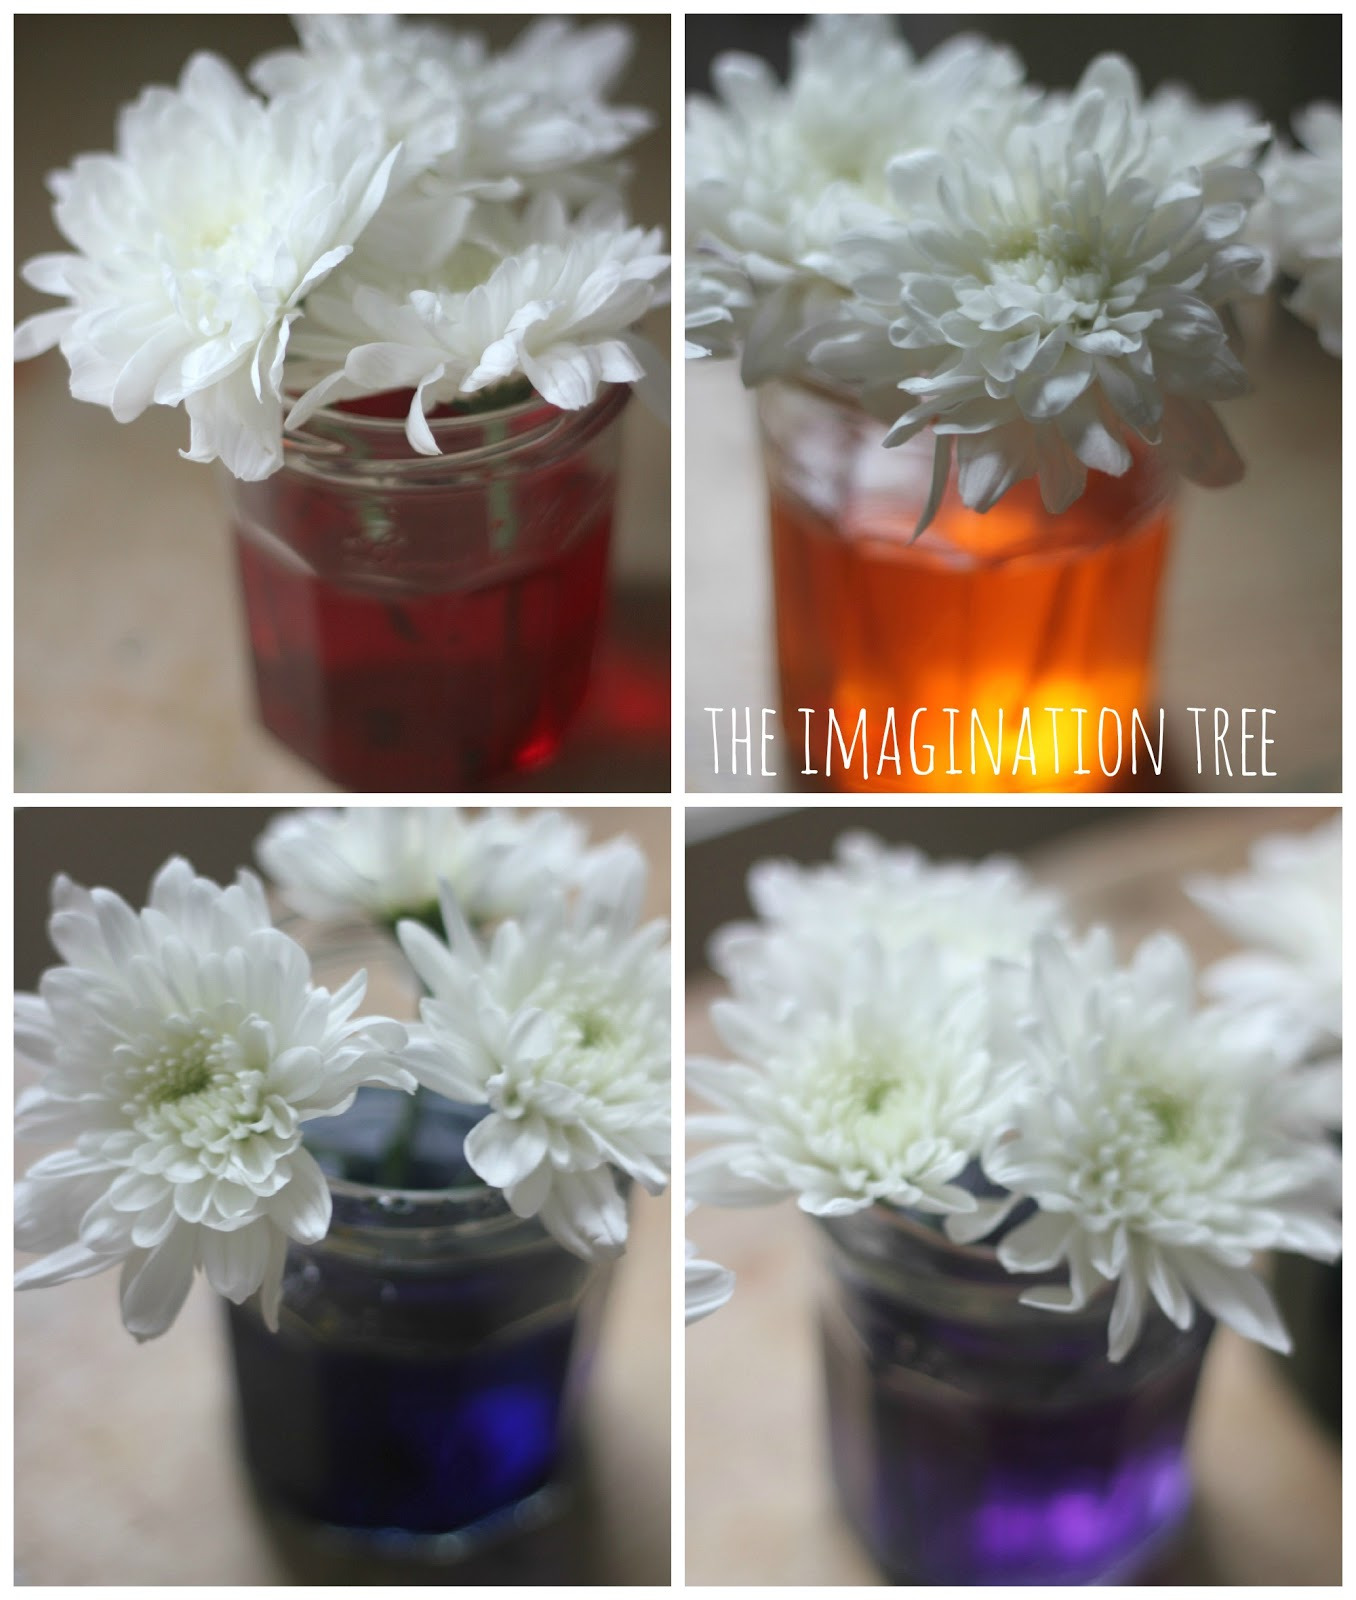 Dyed Flowers Science Experiment The Imagination Tree Stem On Pinterest Projects Fair And Stems